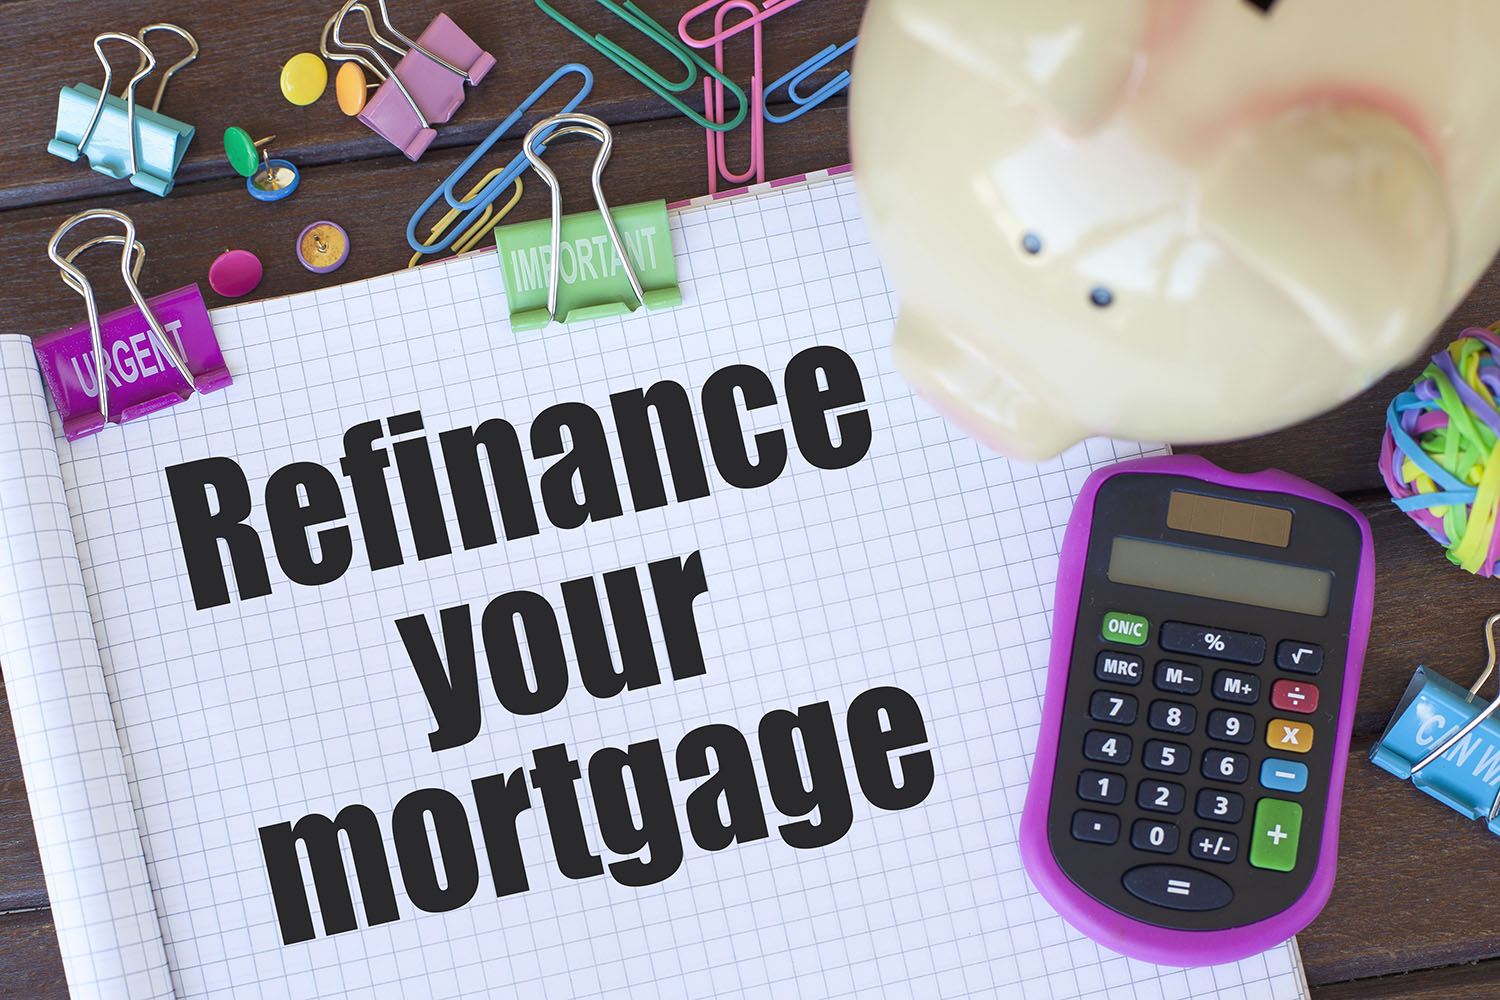 refinance mortgage.jpg